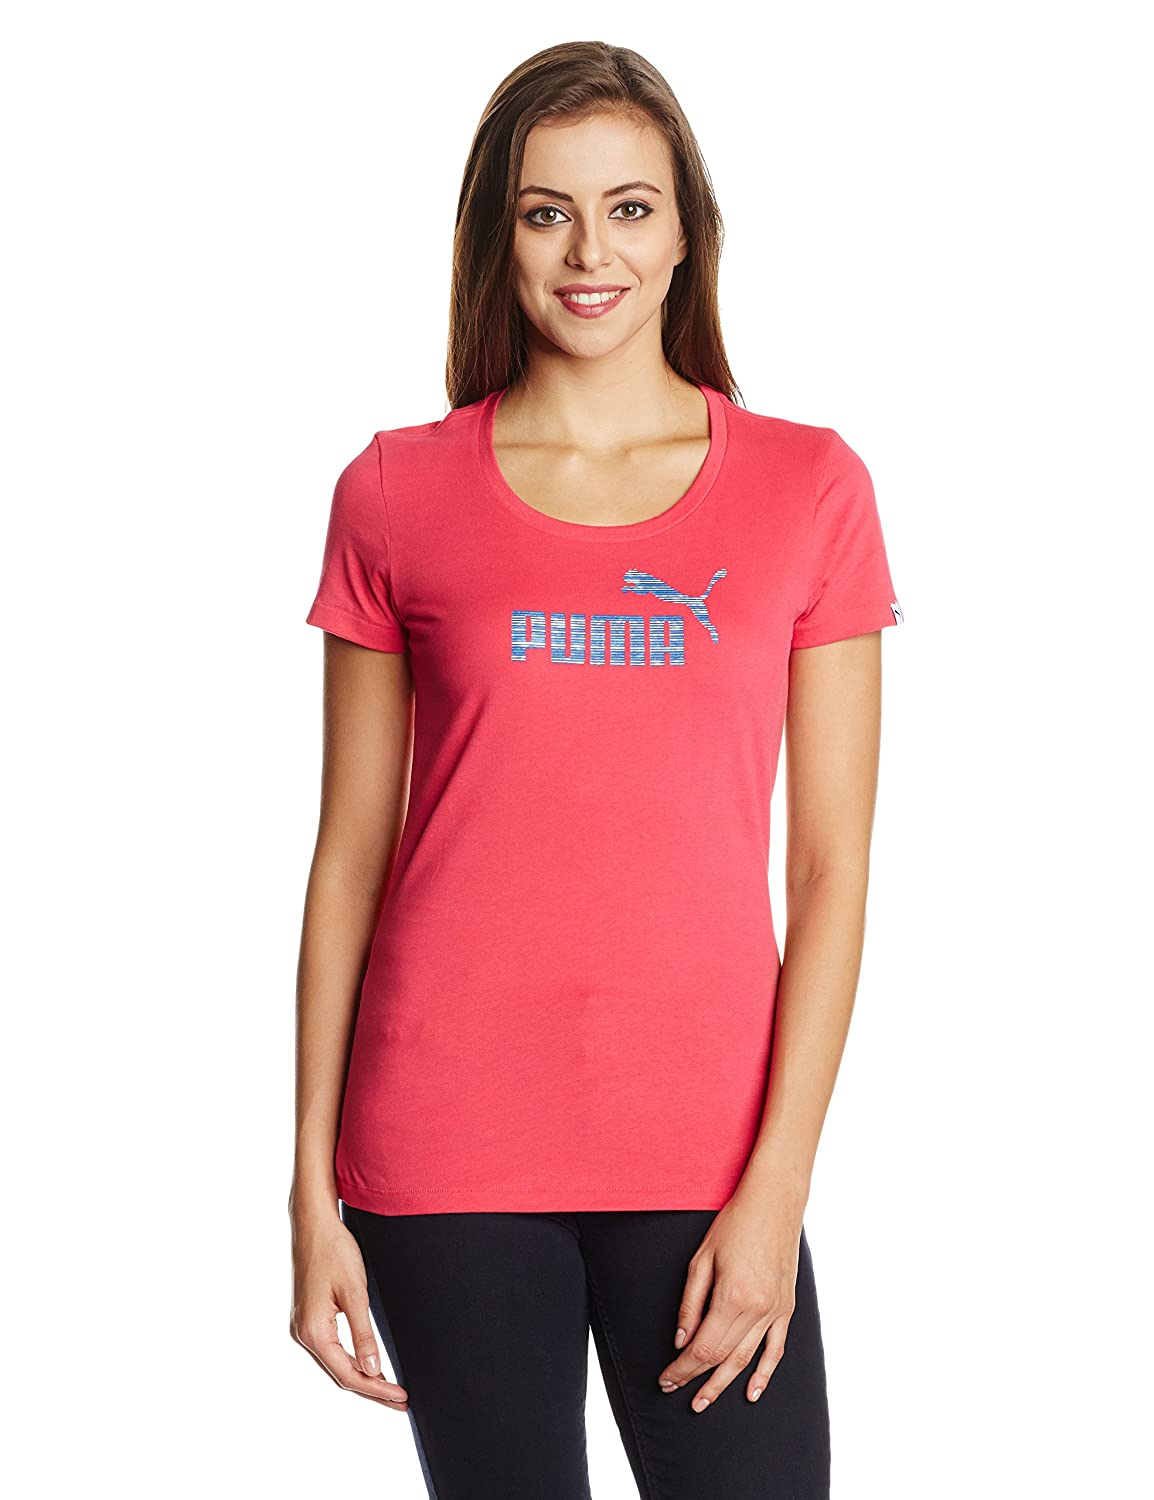 810VwKv73uL._UL1500_ Puma Clothing 50% off or more Rs. 239 – Amazon